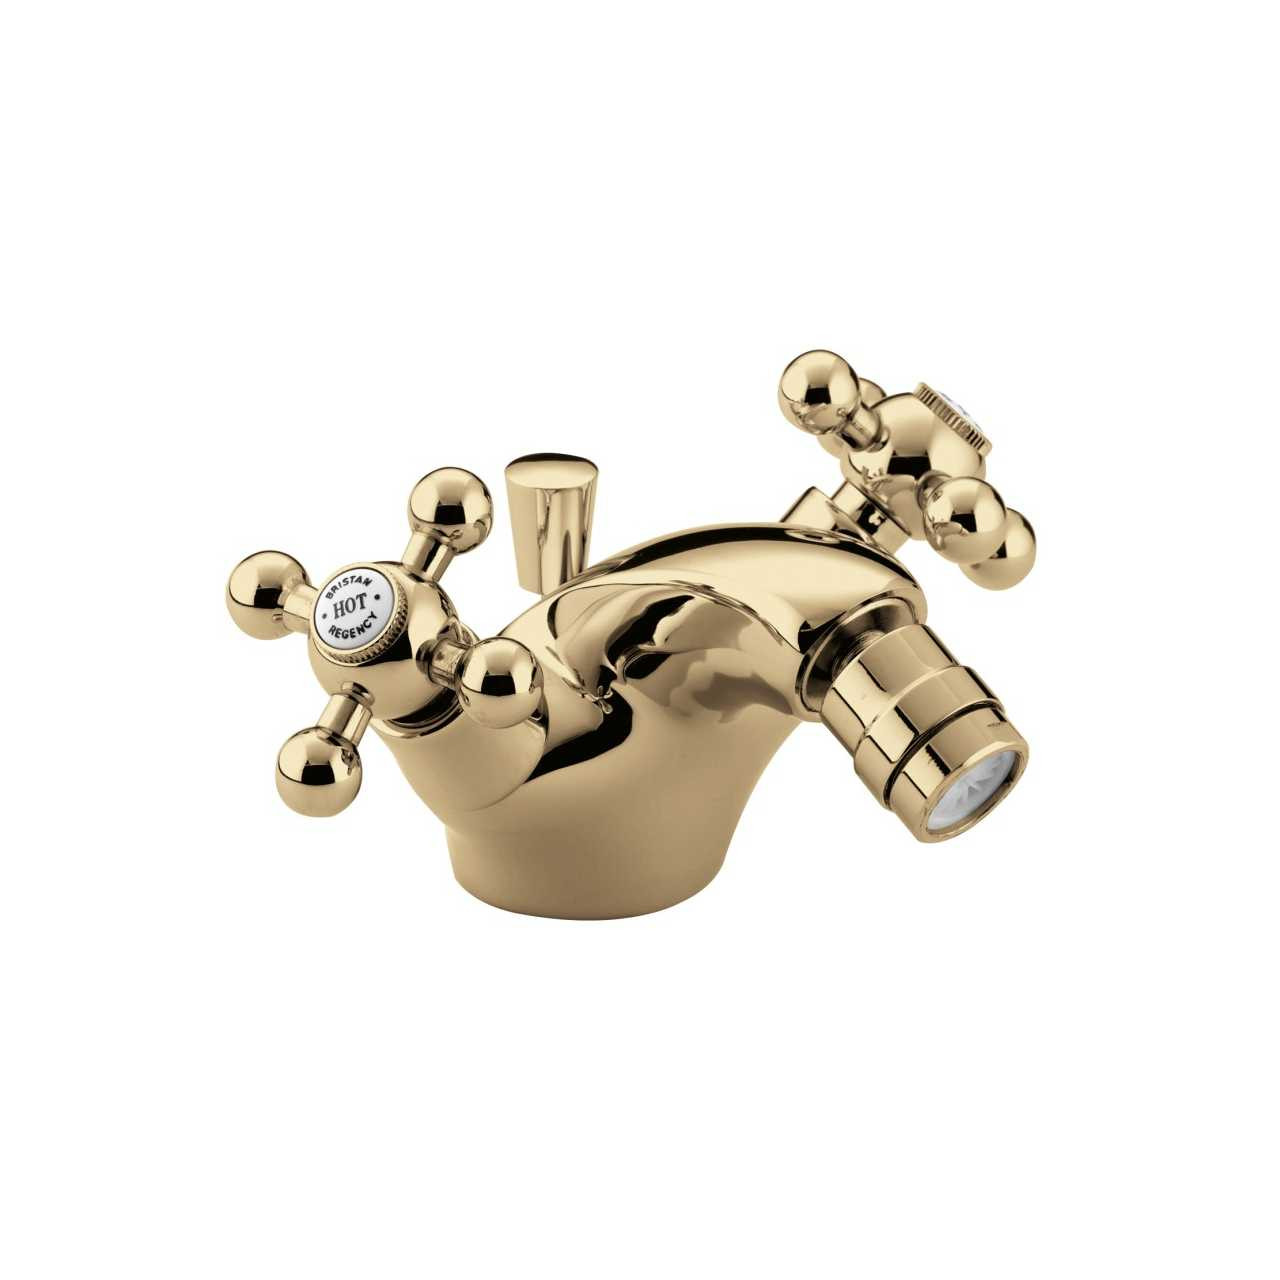 Bristan Regency Gold Mono Bidet Mixer Tap with Pop Up Waste - R-BID-G